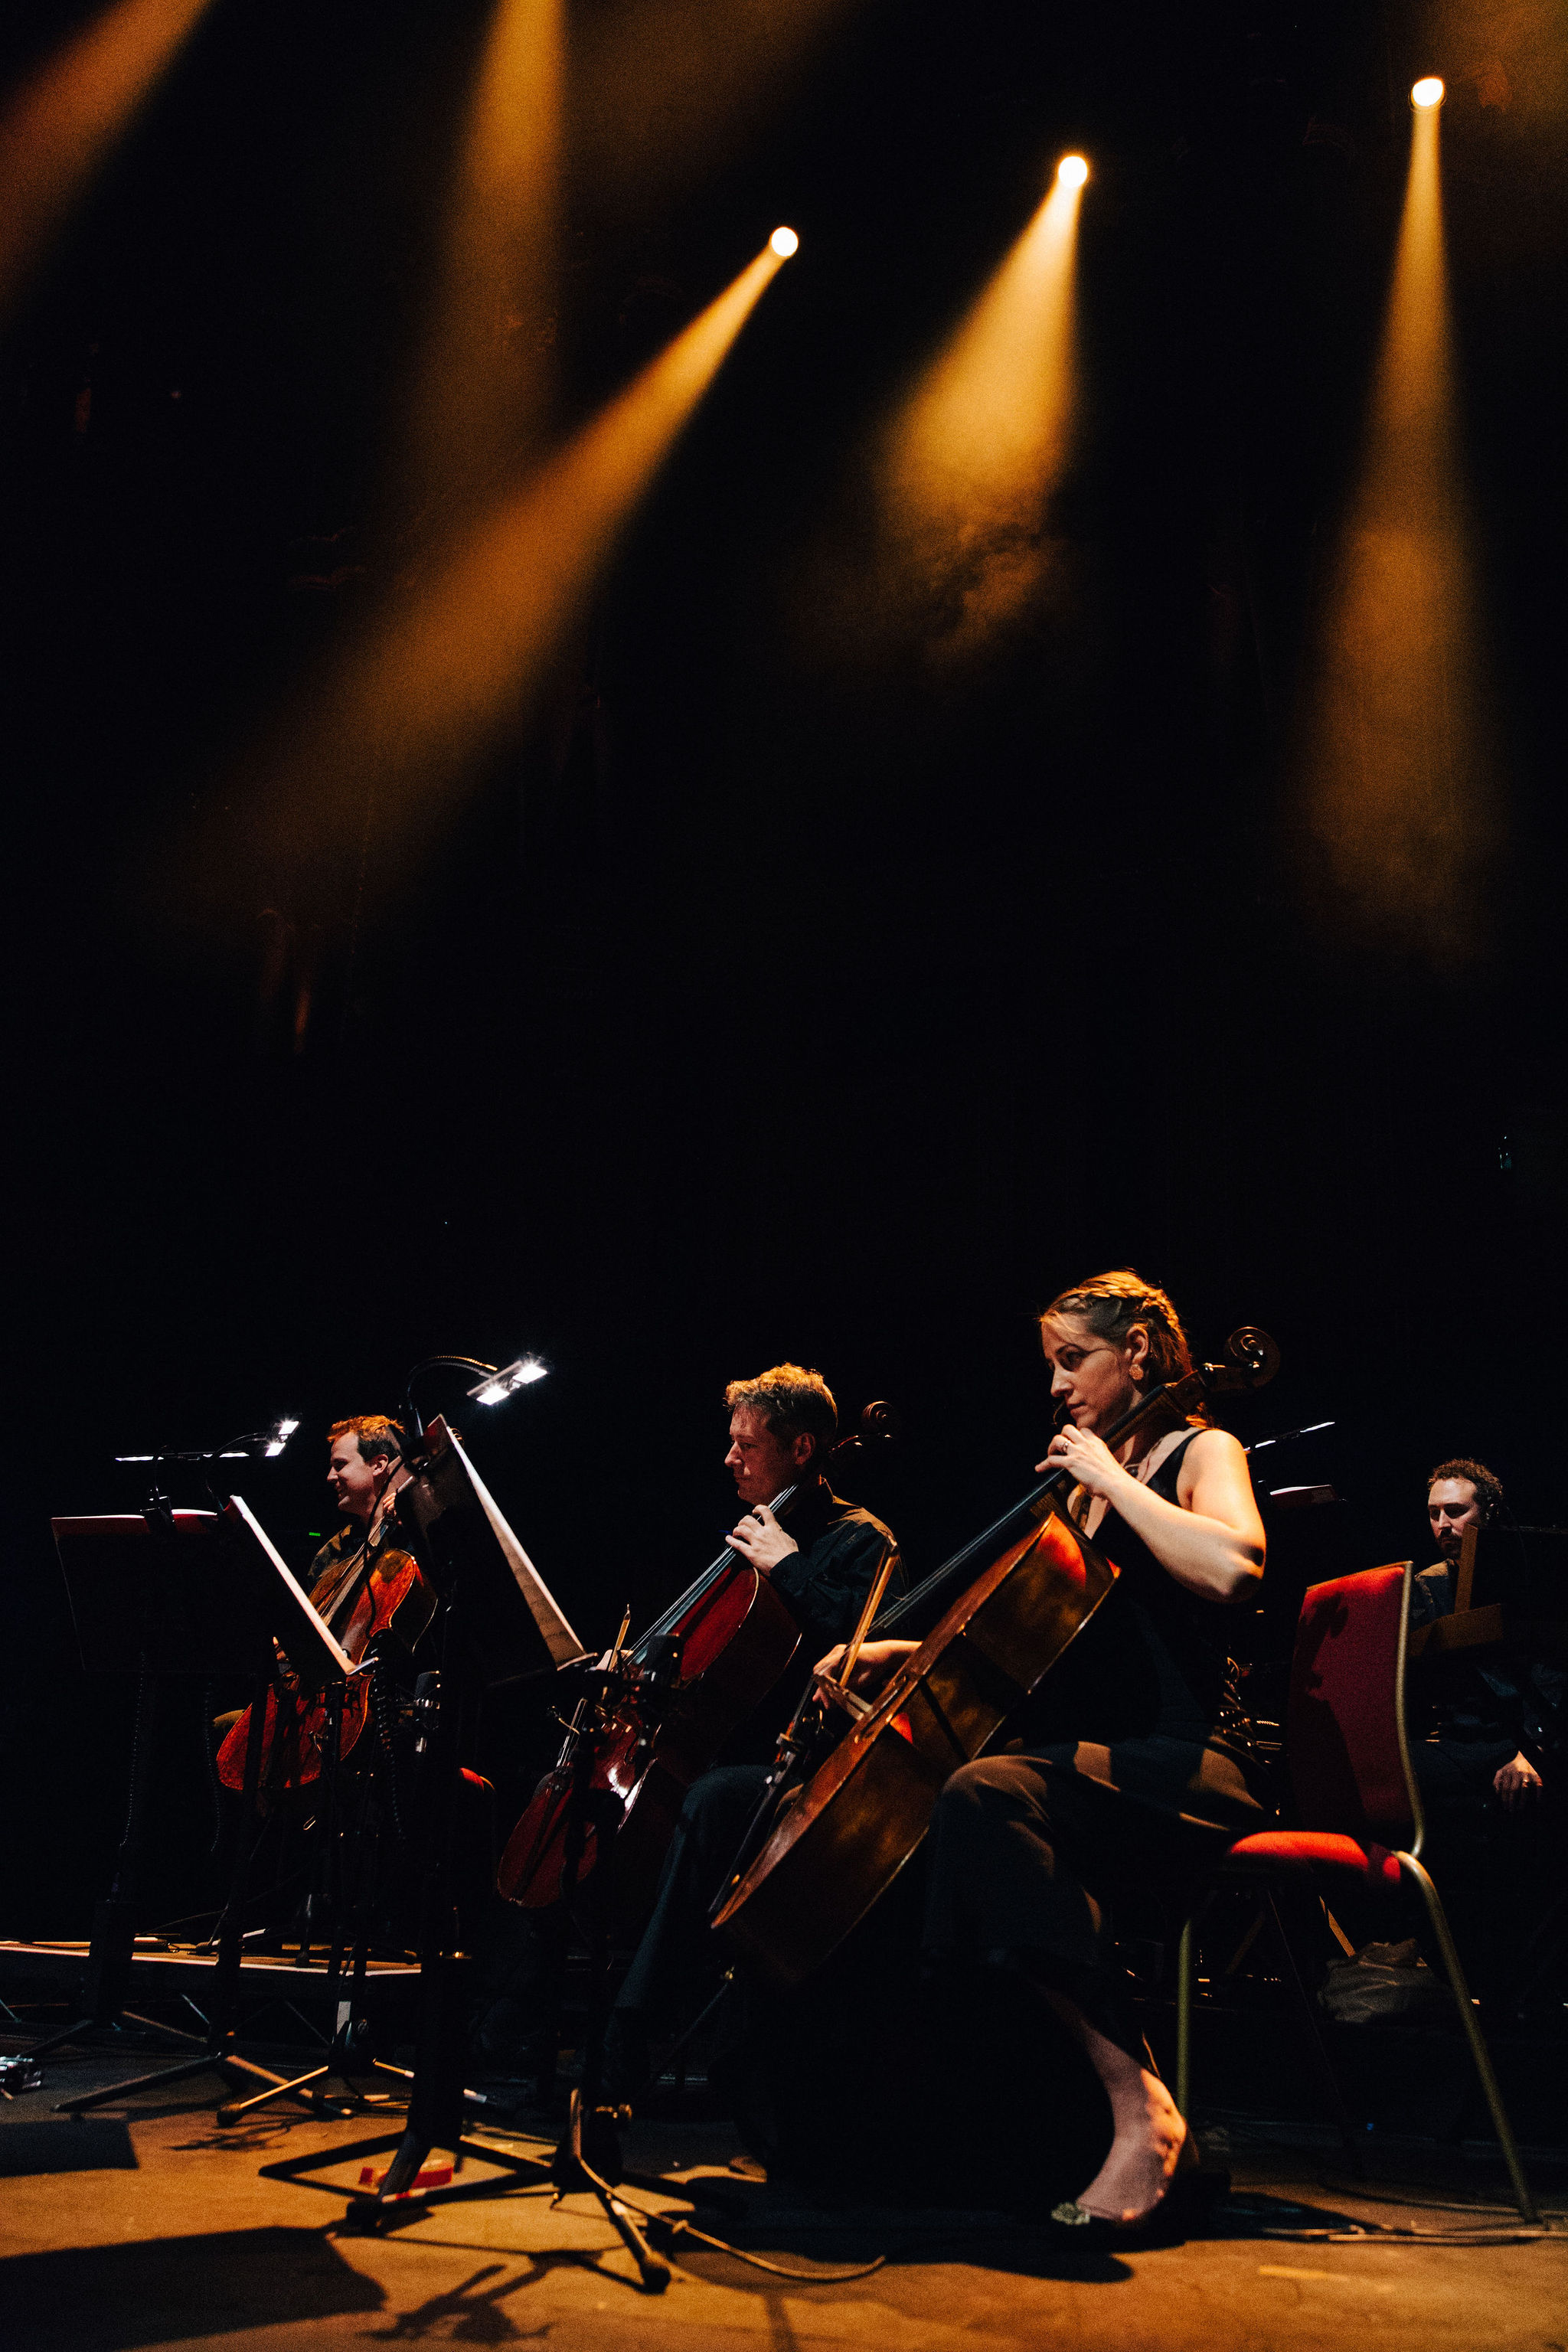 Kath as part of a sextet of cellists rehearsing for Bach Evolution at the Royal Albert Hall